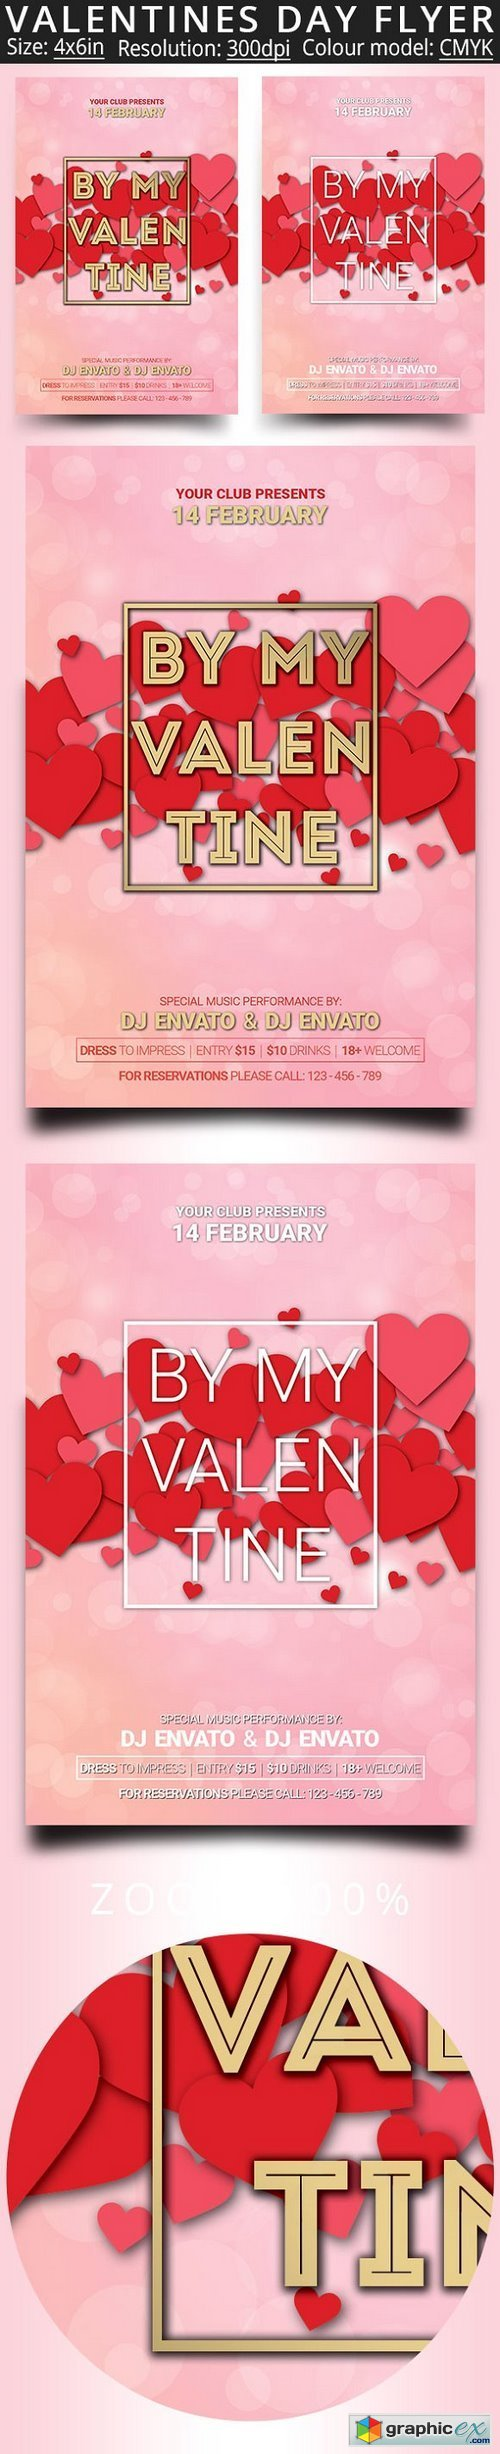 Valentines Day Party Flyer 1163336